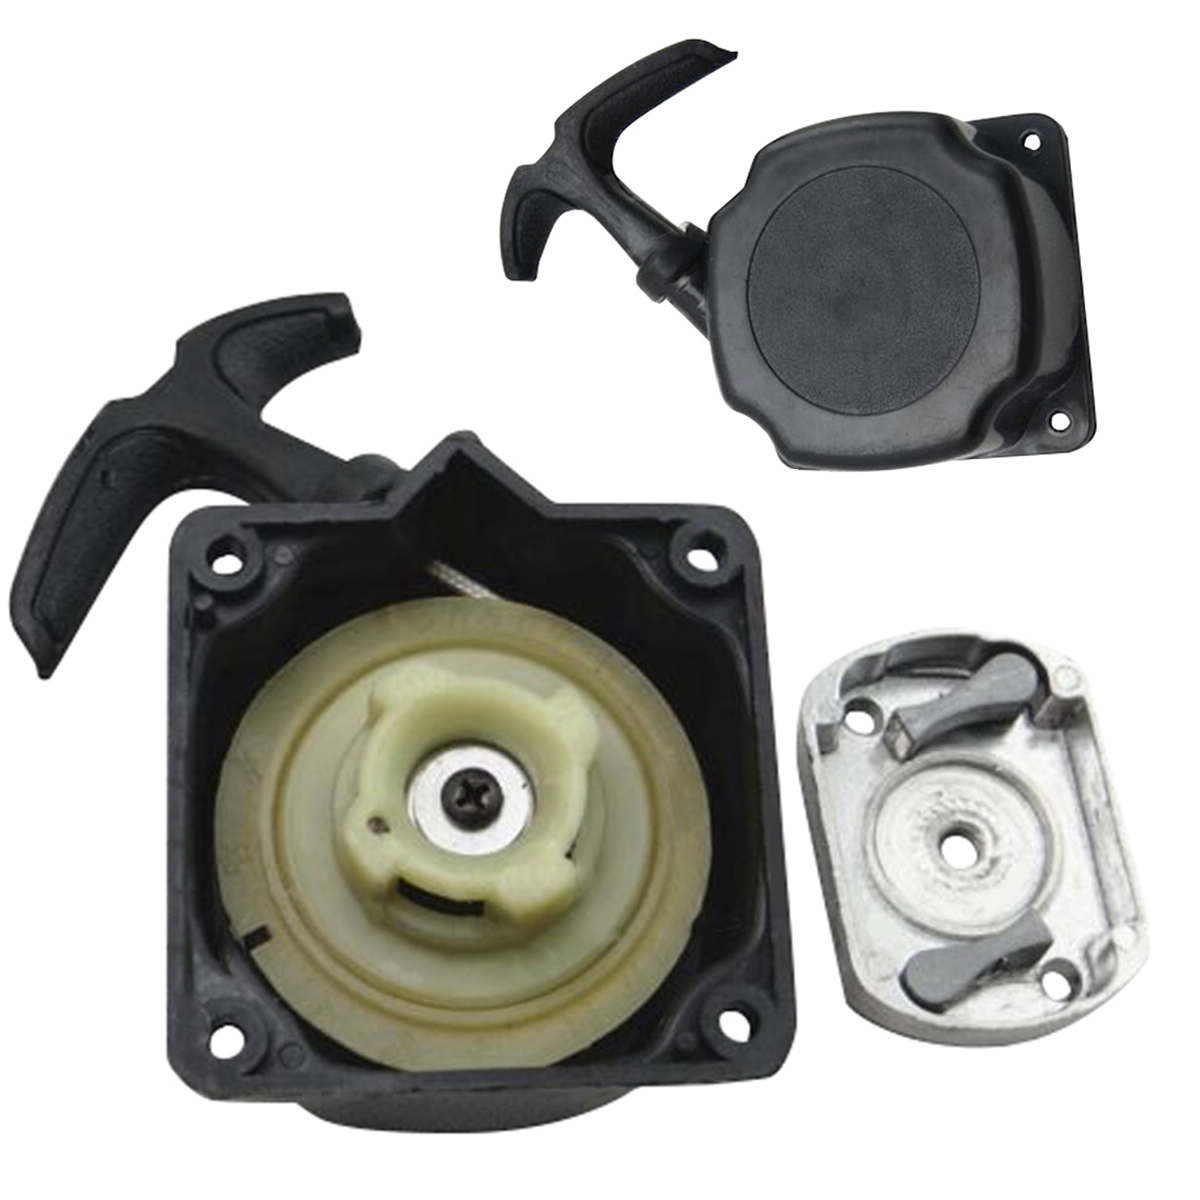 Mayitr Recoil Pull Starter + Cog Part Gas Scooter Lawn Mower Parts For Brush Cutter Strimmer Lawnmower mayitr recoil pull starter start spring kit replacement for engine lawn mover parts